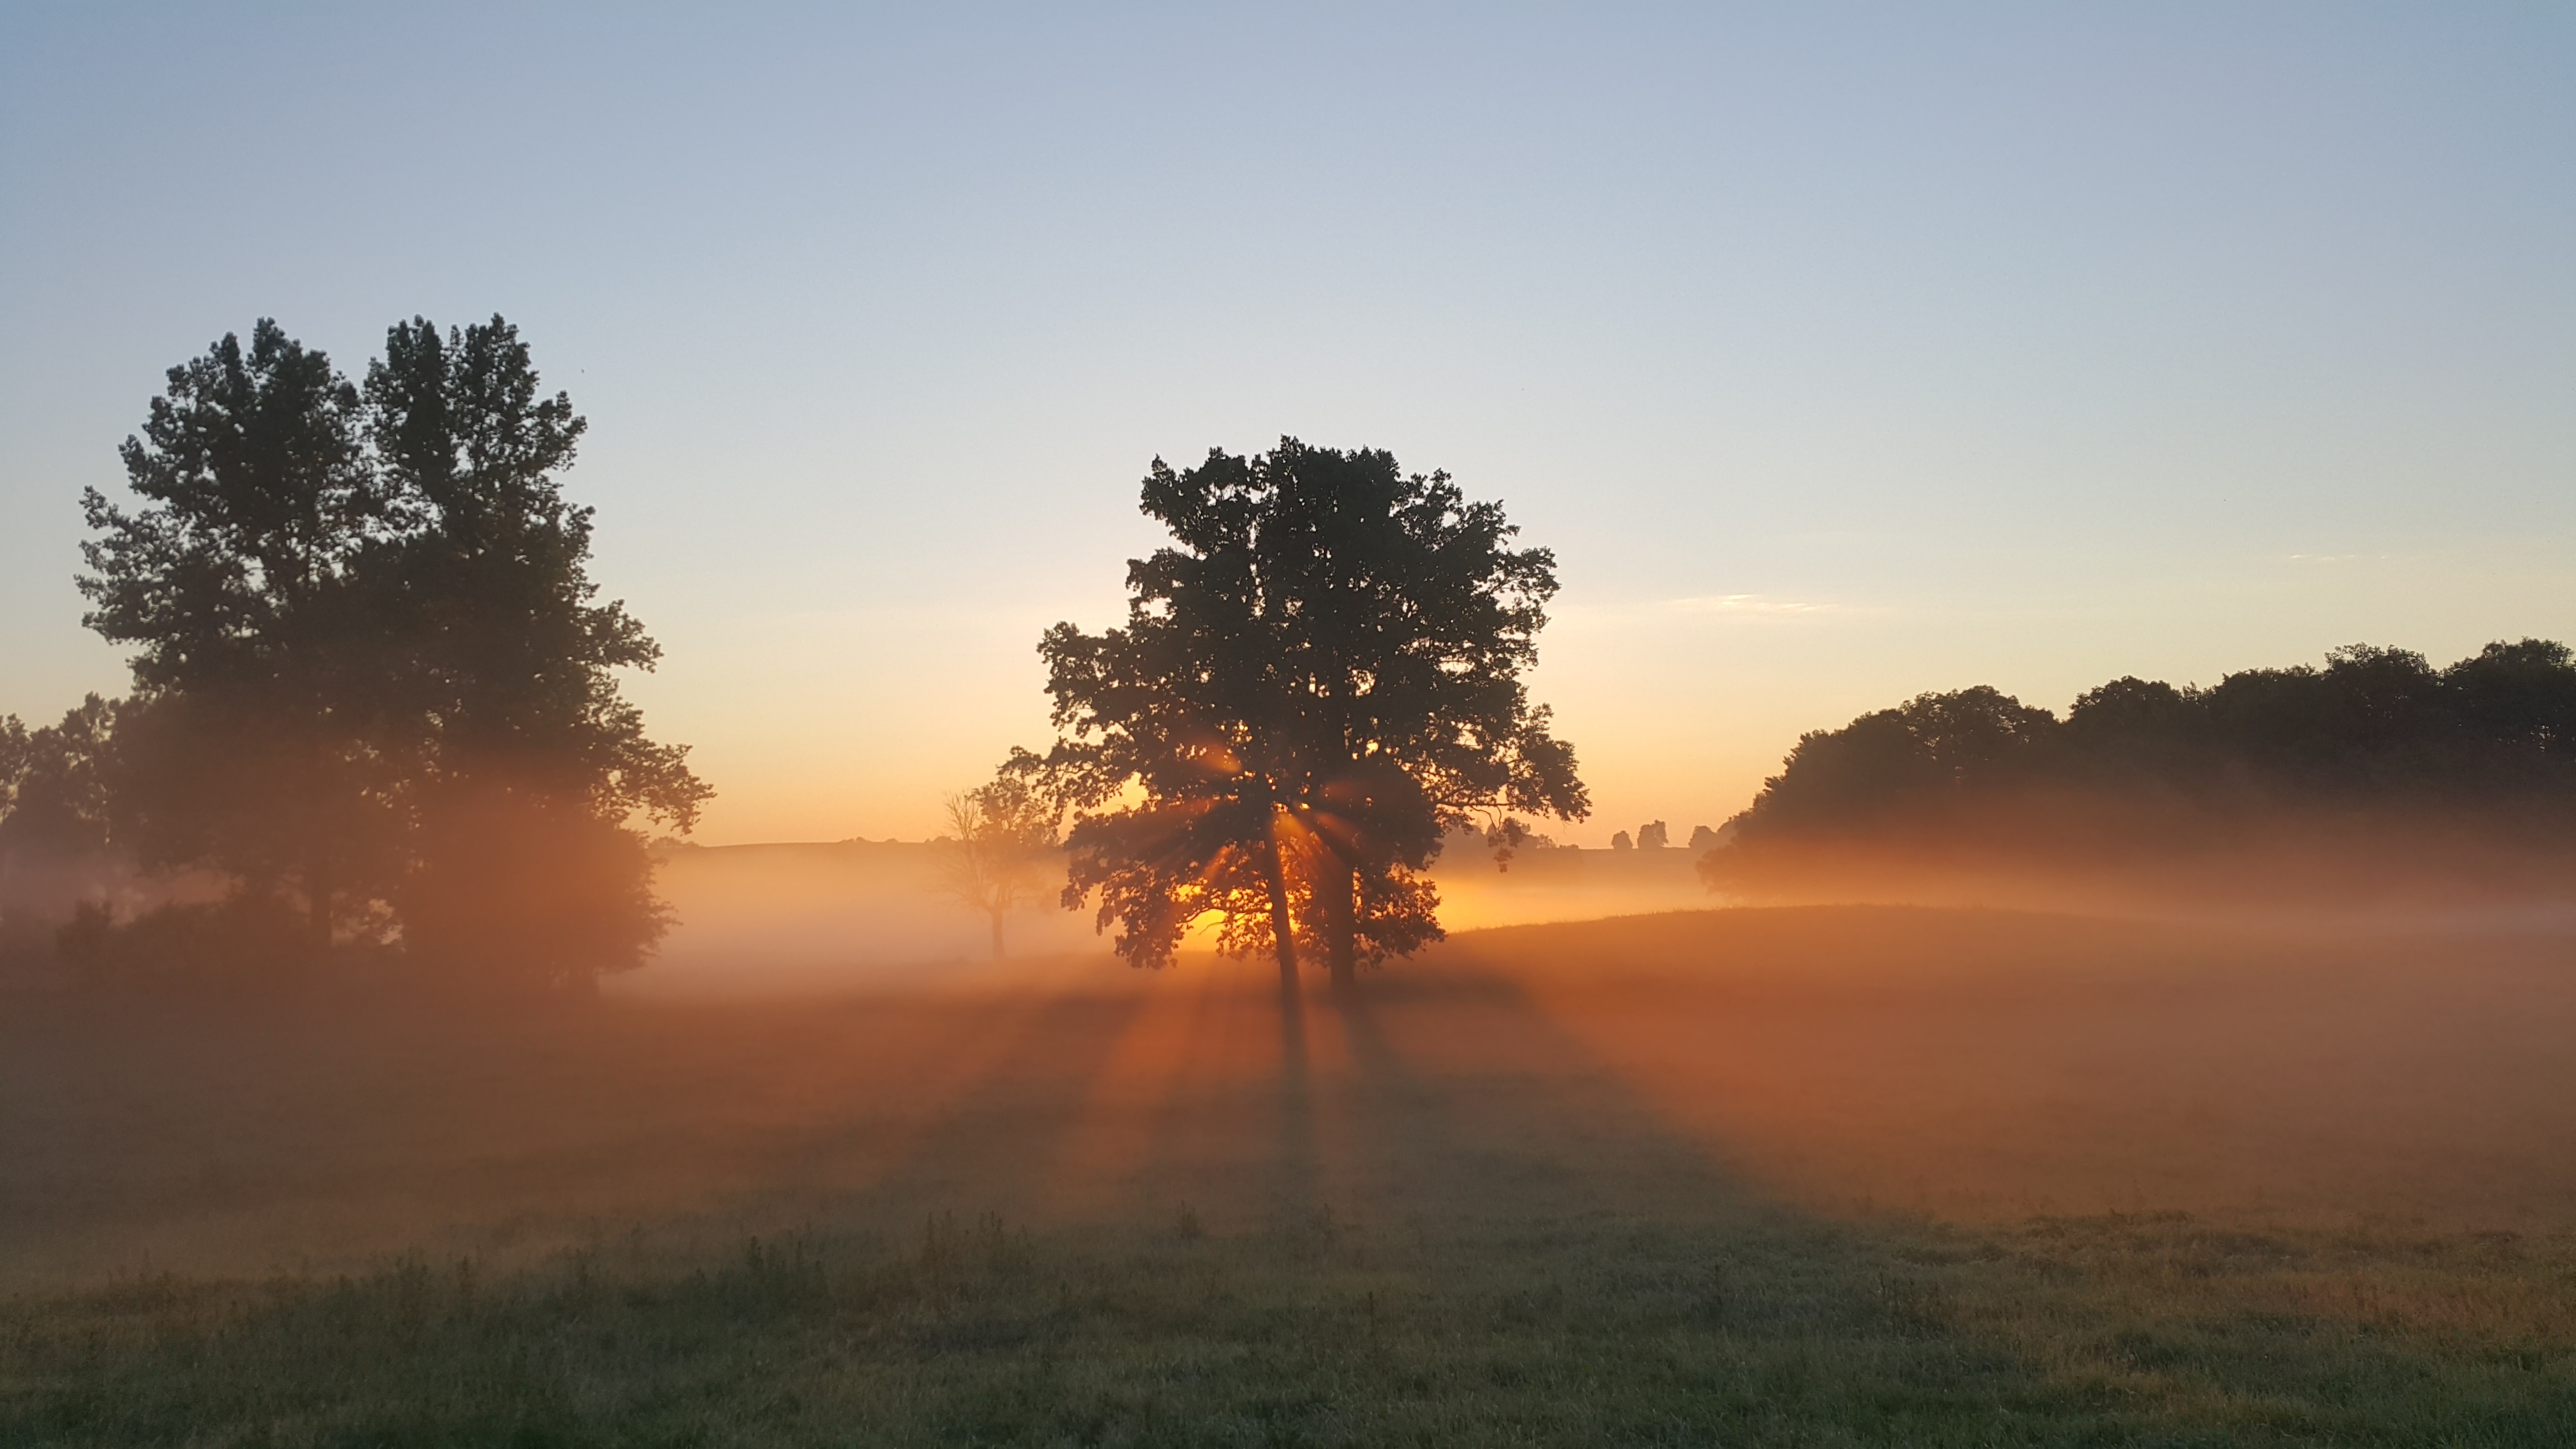 Sun beams shine through trees in a foggy countryside pasture